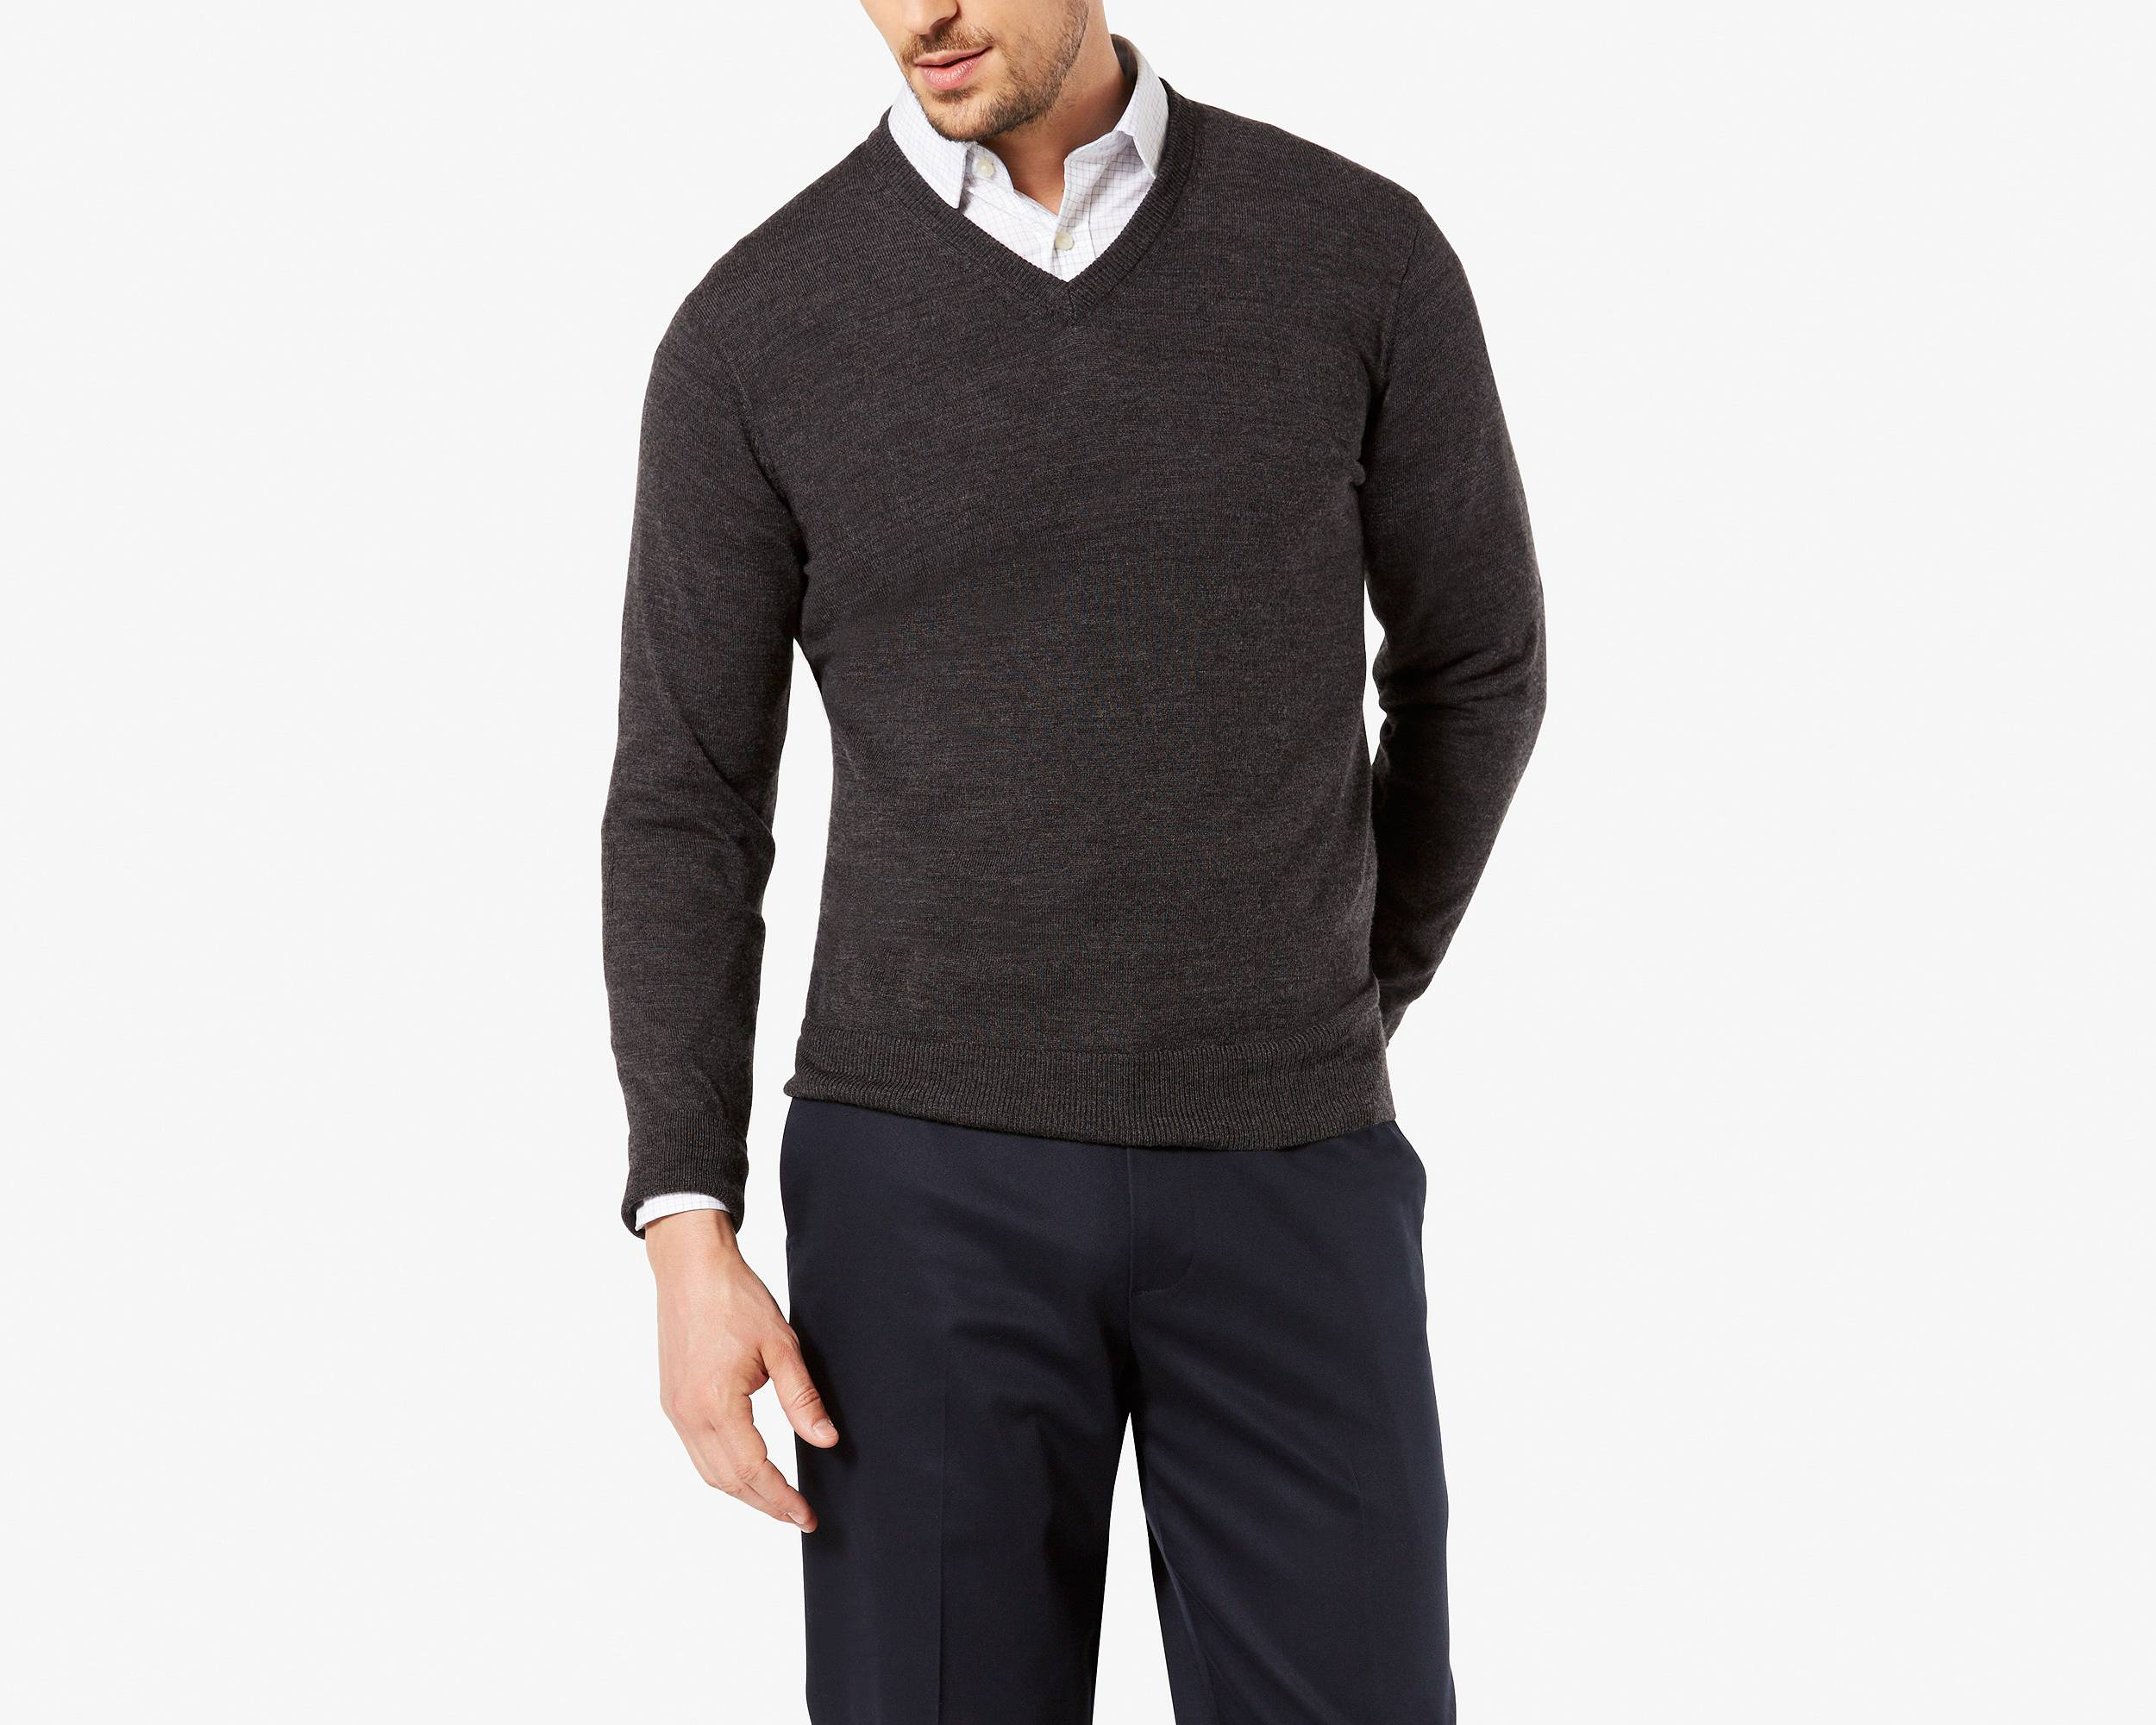 Sweaters & Sweatshirts for Men - Men's V-Neck Sweaters | Dockers®